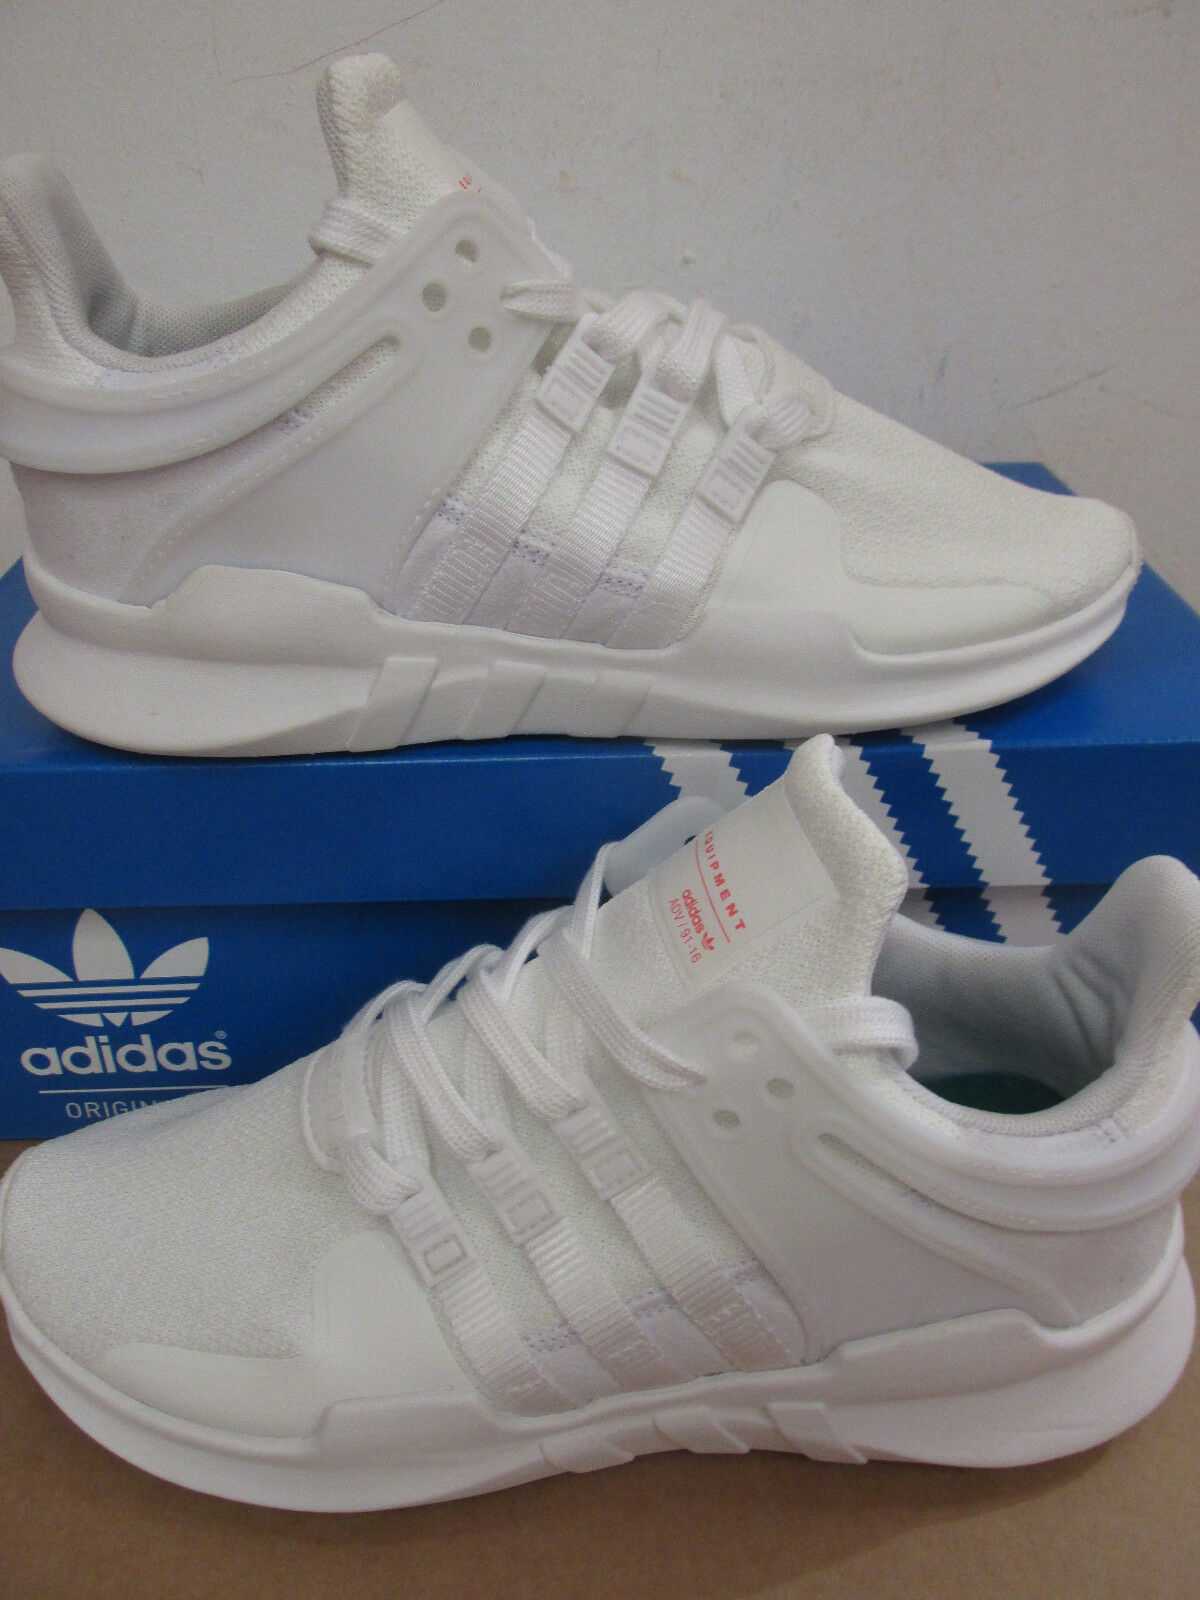 adidas originals Equipment support ADV W womens trainers BY2917 CLEARANCE